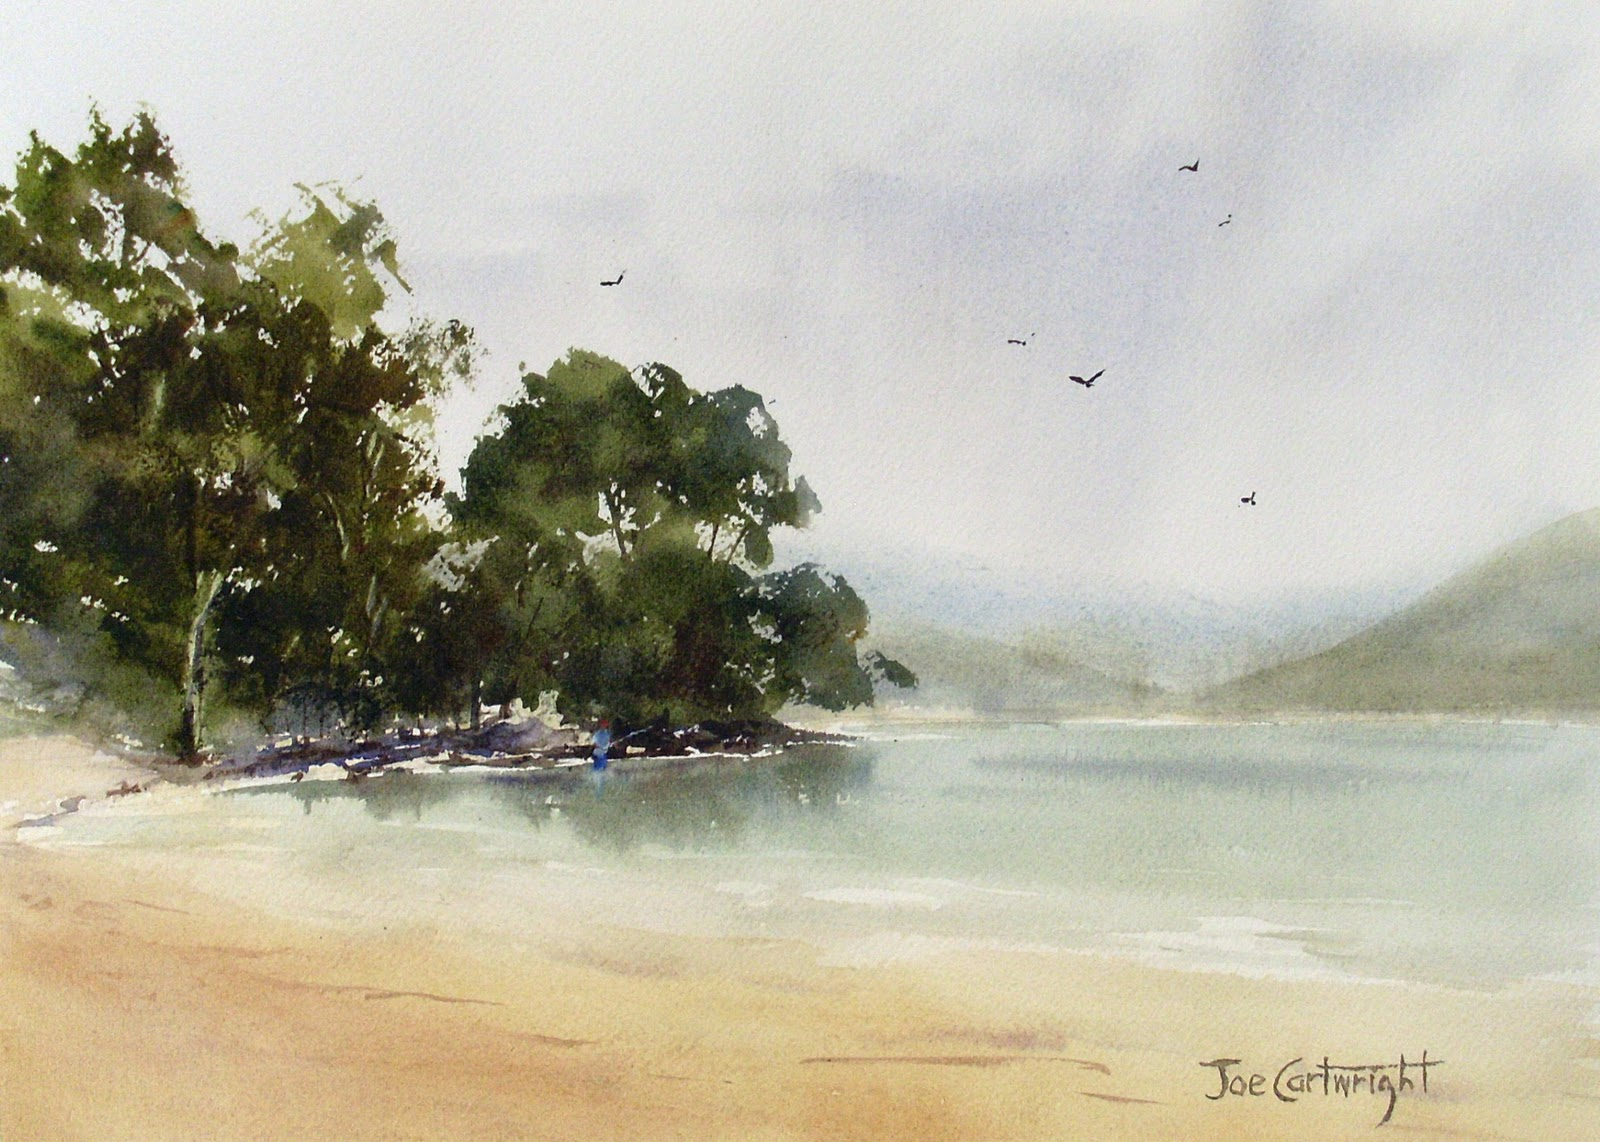 Joe Cartwright S Watercolor Blog Plein Air Painting With